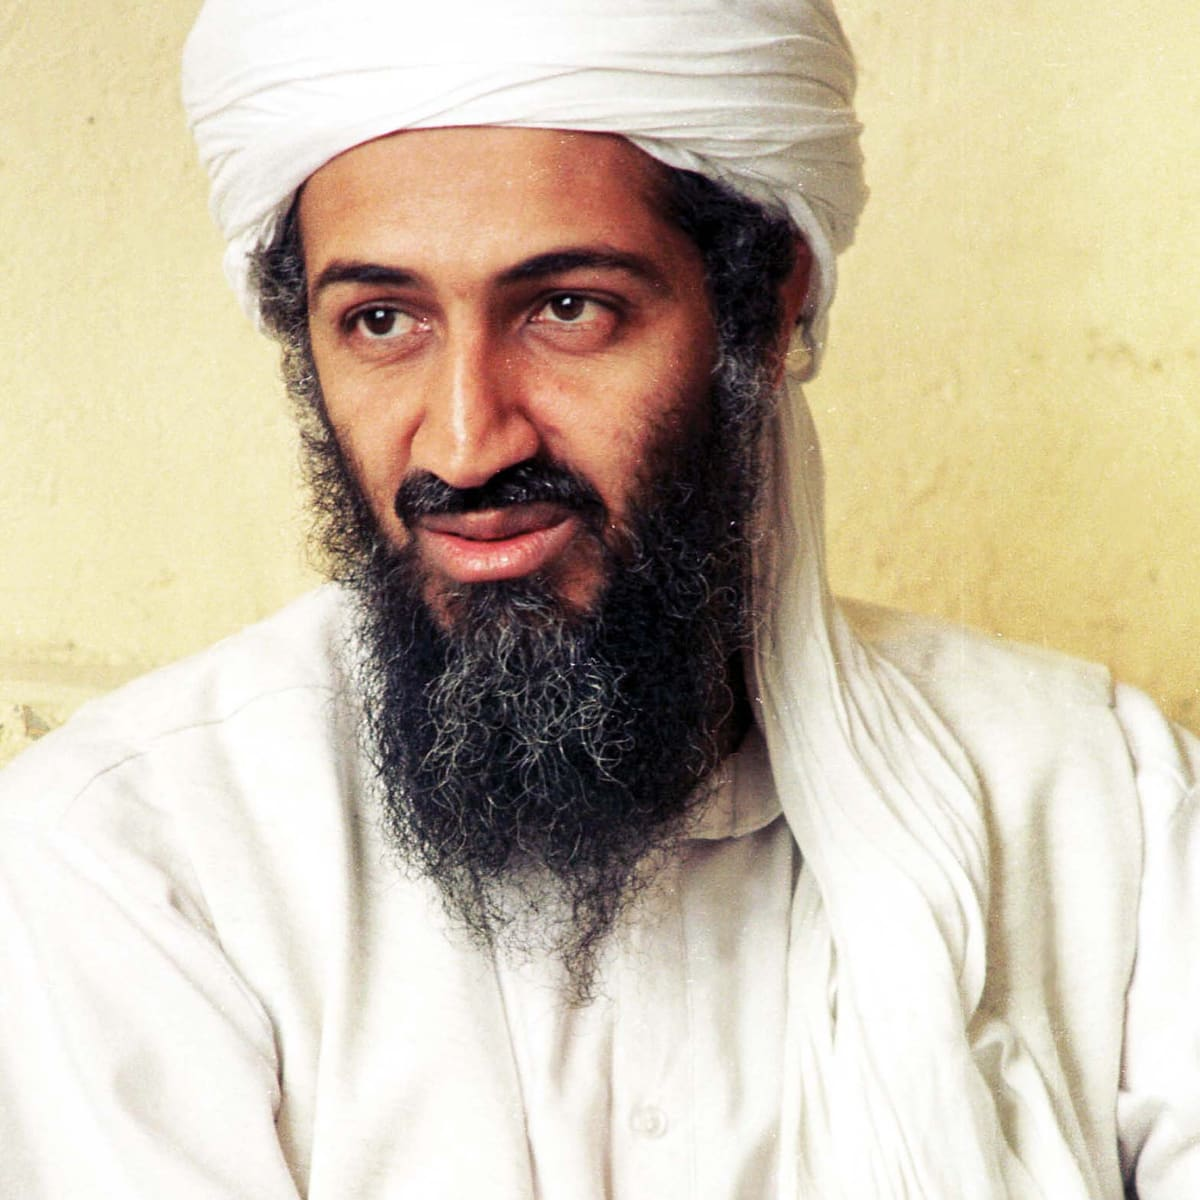 osama-bin-laden-born-march-10-1957-member-of-the-prominent-saudi-bin-laden-family-and-the-founder-of-the-islamic-extremist-organization-al-qaeda-best-known-for-the-september-11-attacks-on-the-unite.jpg